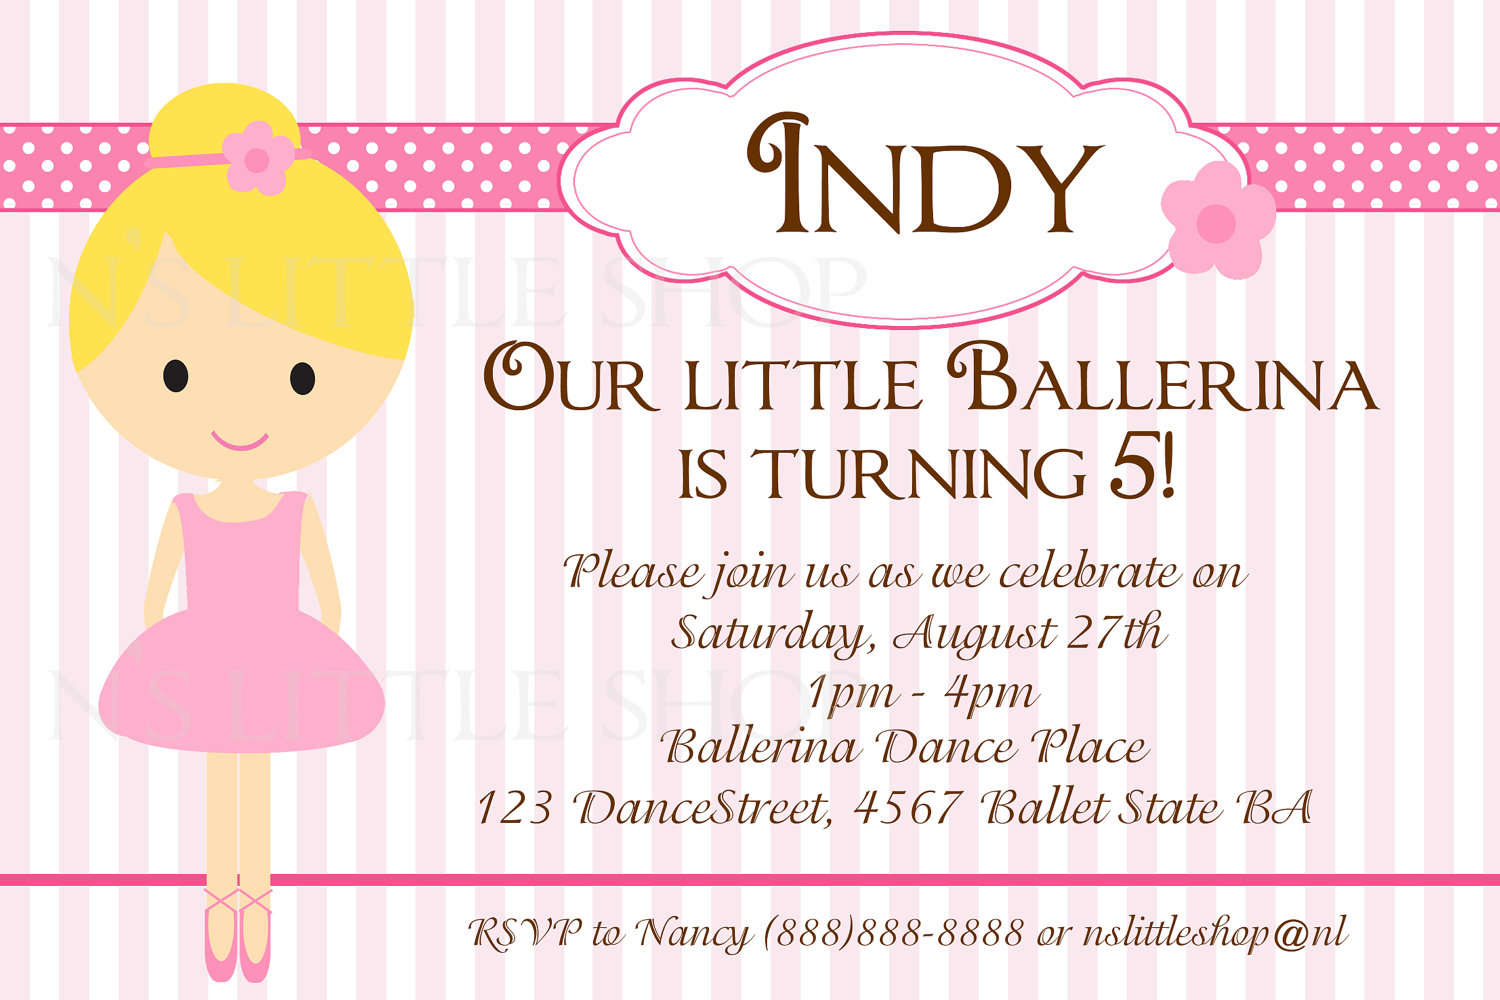 birthday party invitation card template ; Chic-Kids-Party-Invitations-To-Create-Your-Own-Online-Party-Invitations